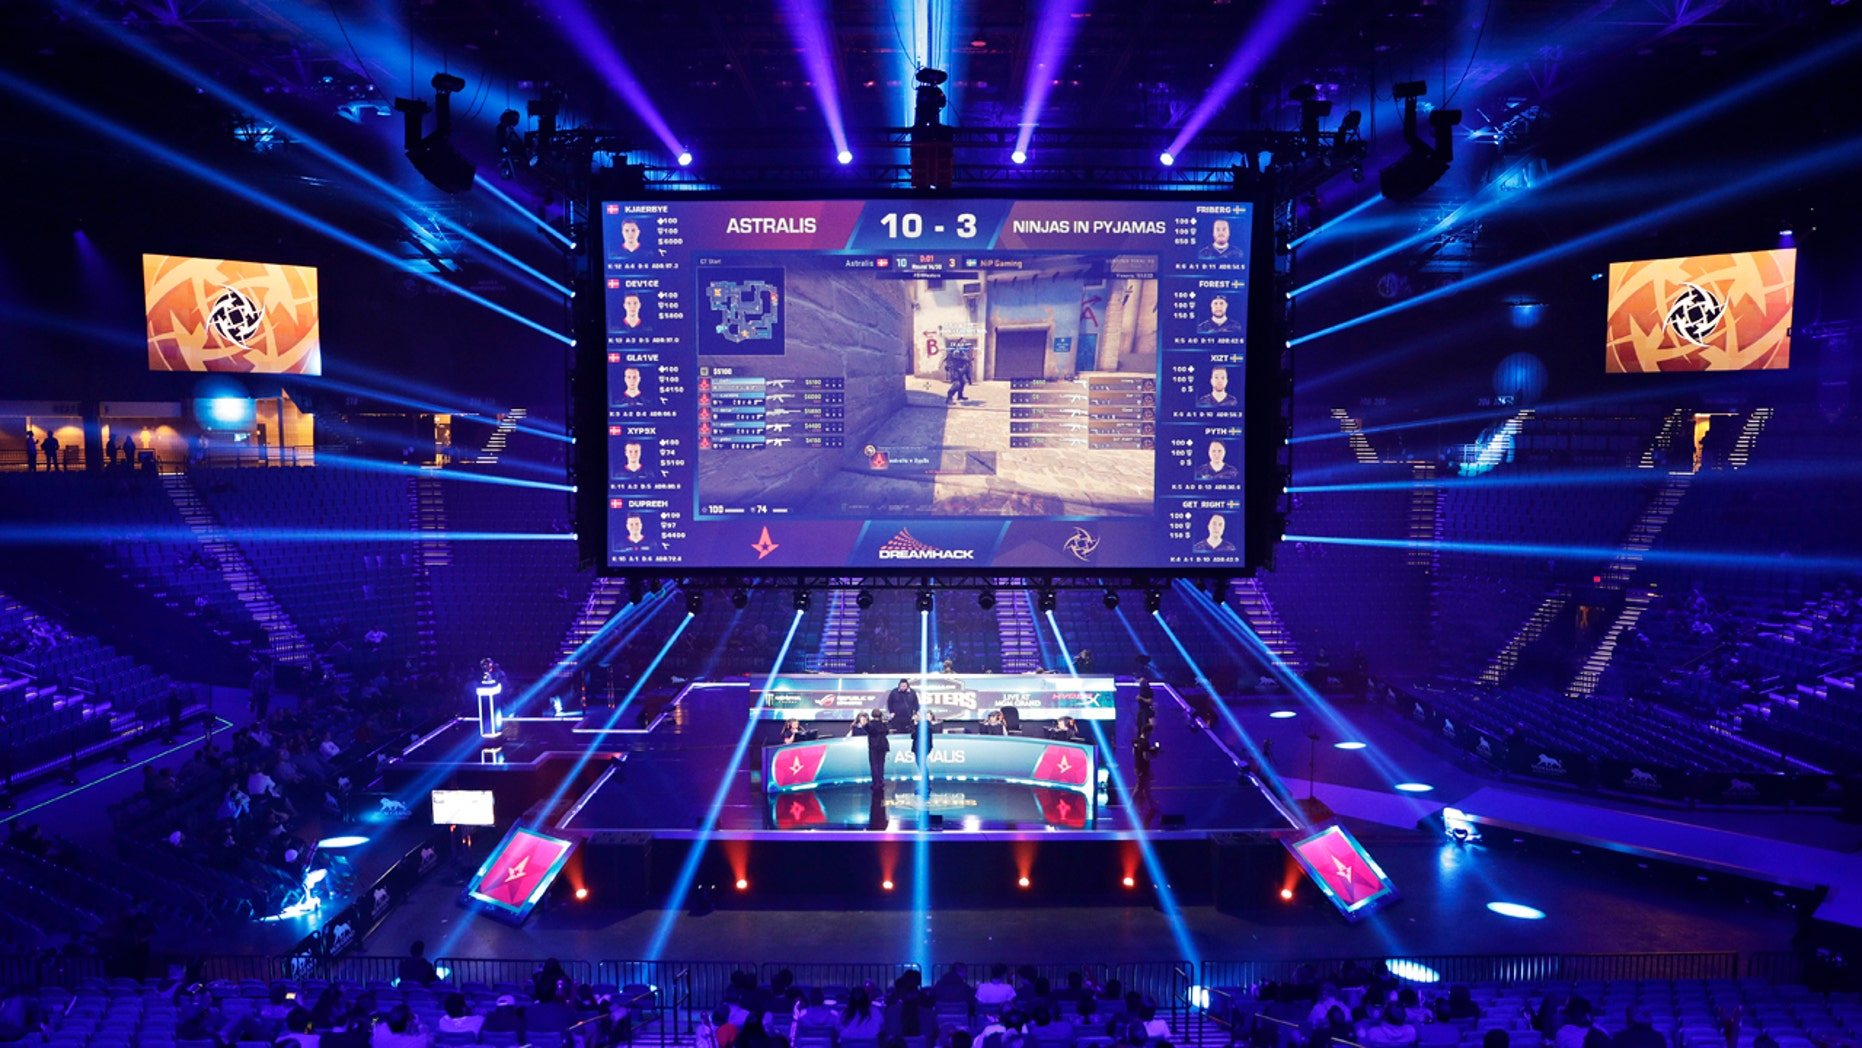 eams compete against each other playing Counter-Strike: Global Offensive during the Dreamhack Masters e-sports tournament at the MGM Grand Garden Arena in Las Vegas. A permanent 15,000 square-foot e-sports facility is scheduled to open in Las Vegas.